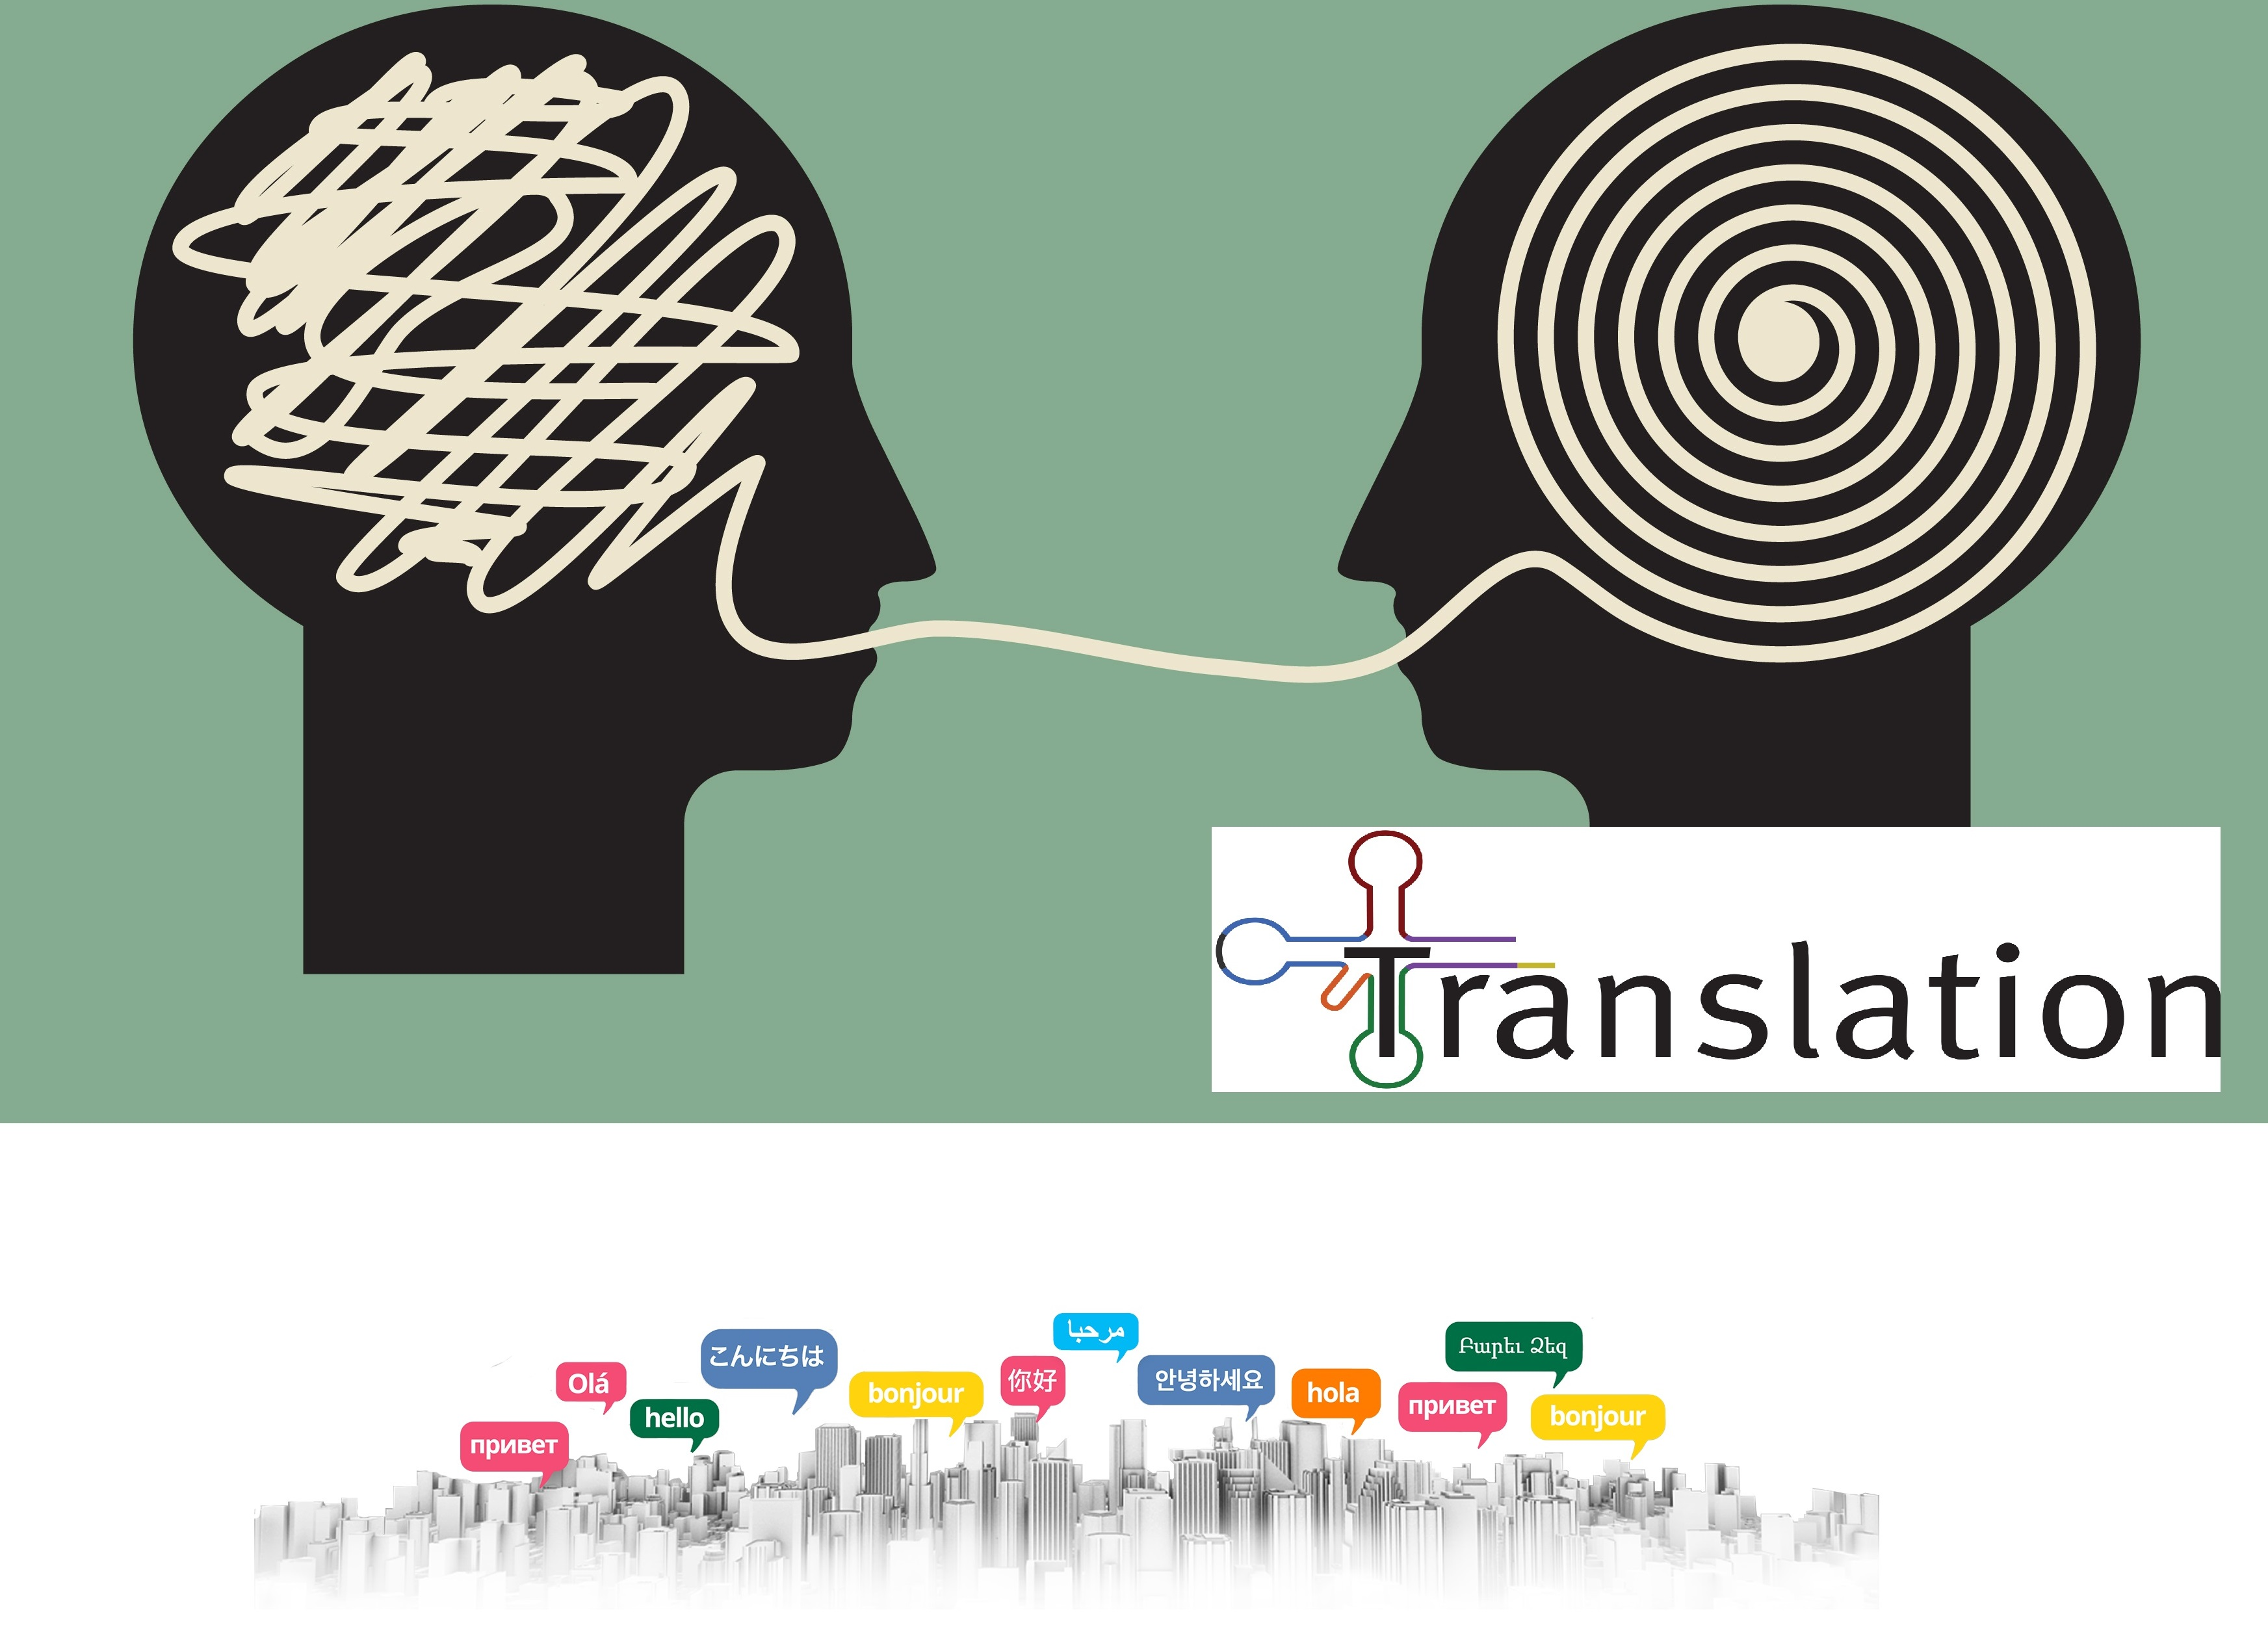 language and translation A collection of articles about language, writing systems, translation and related topics.